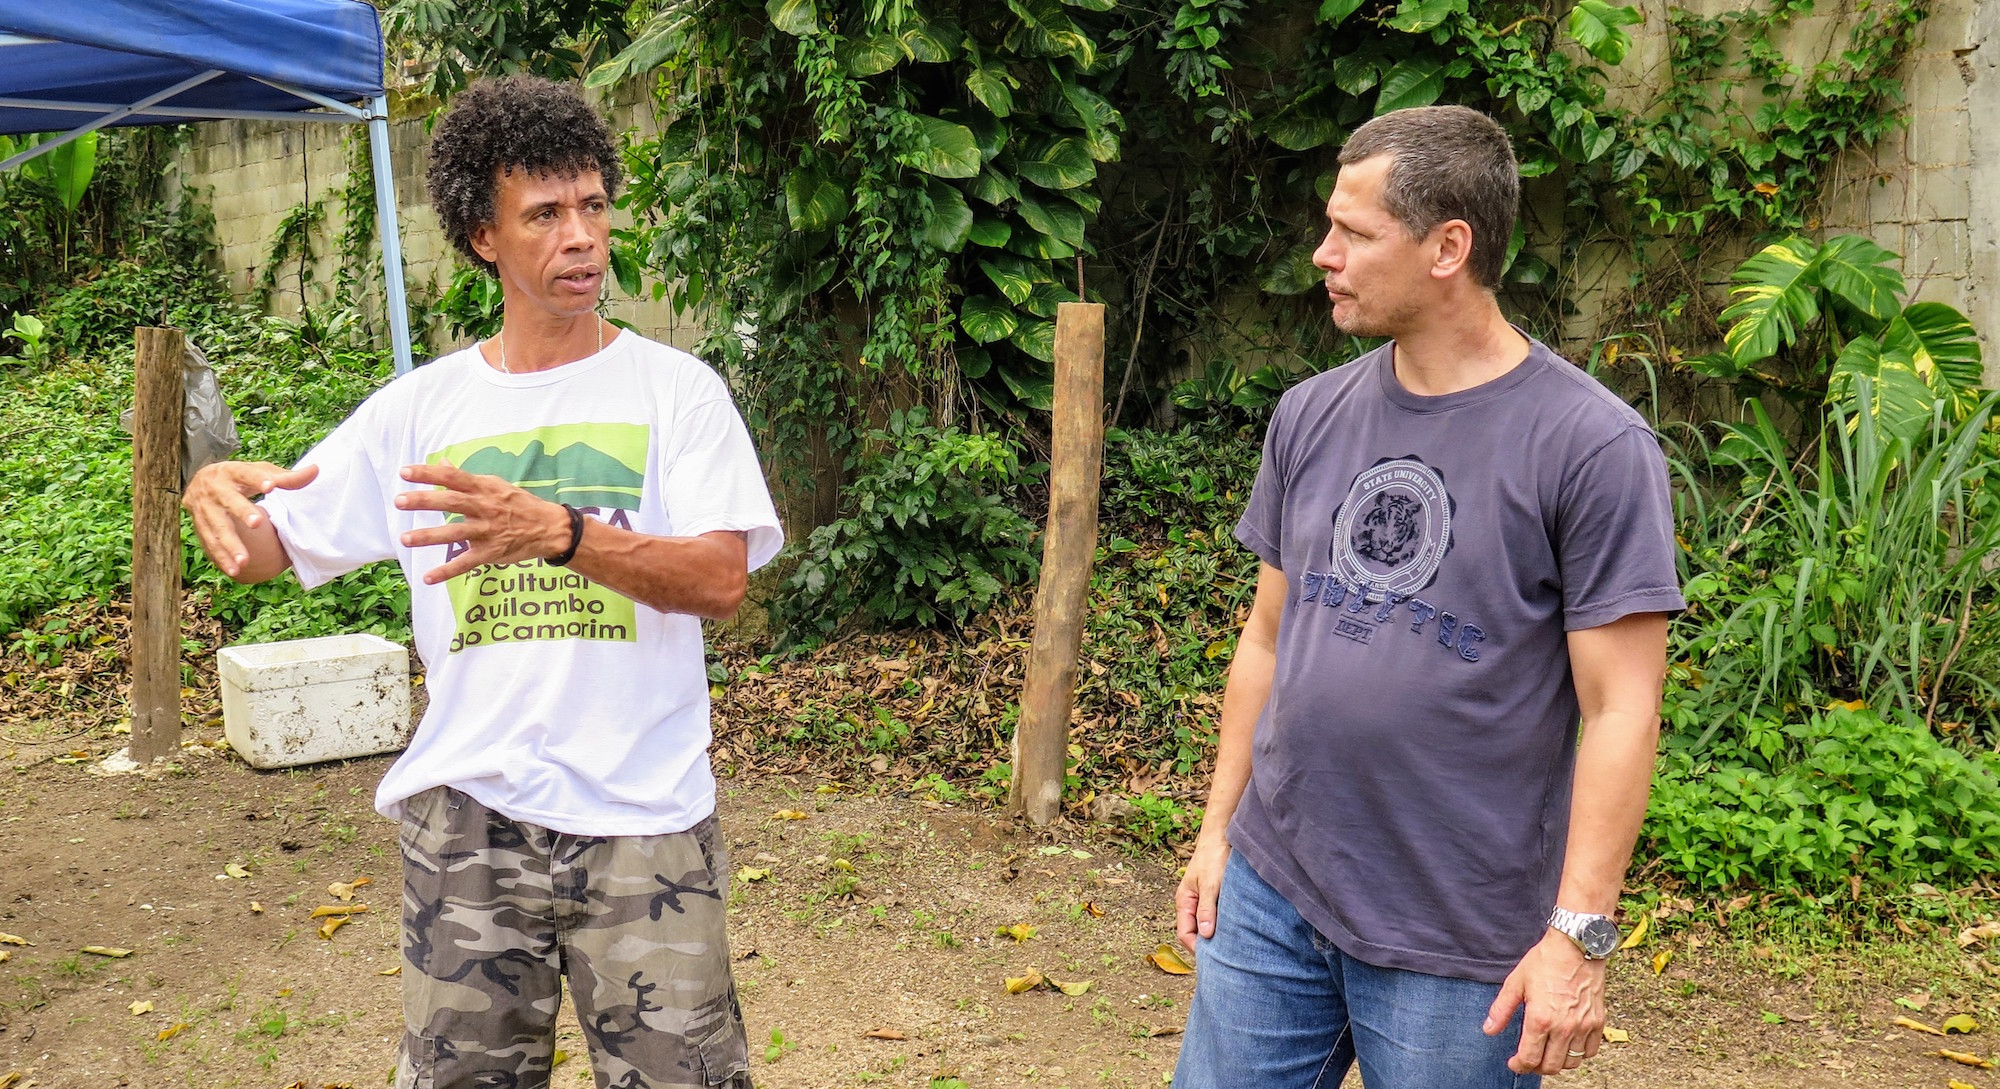 Adilson Almeida explains the Quilombo's work to Otávio Barros of the Vale Encantado Cooperative